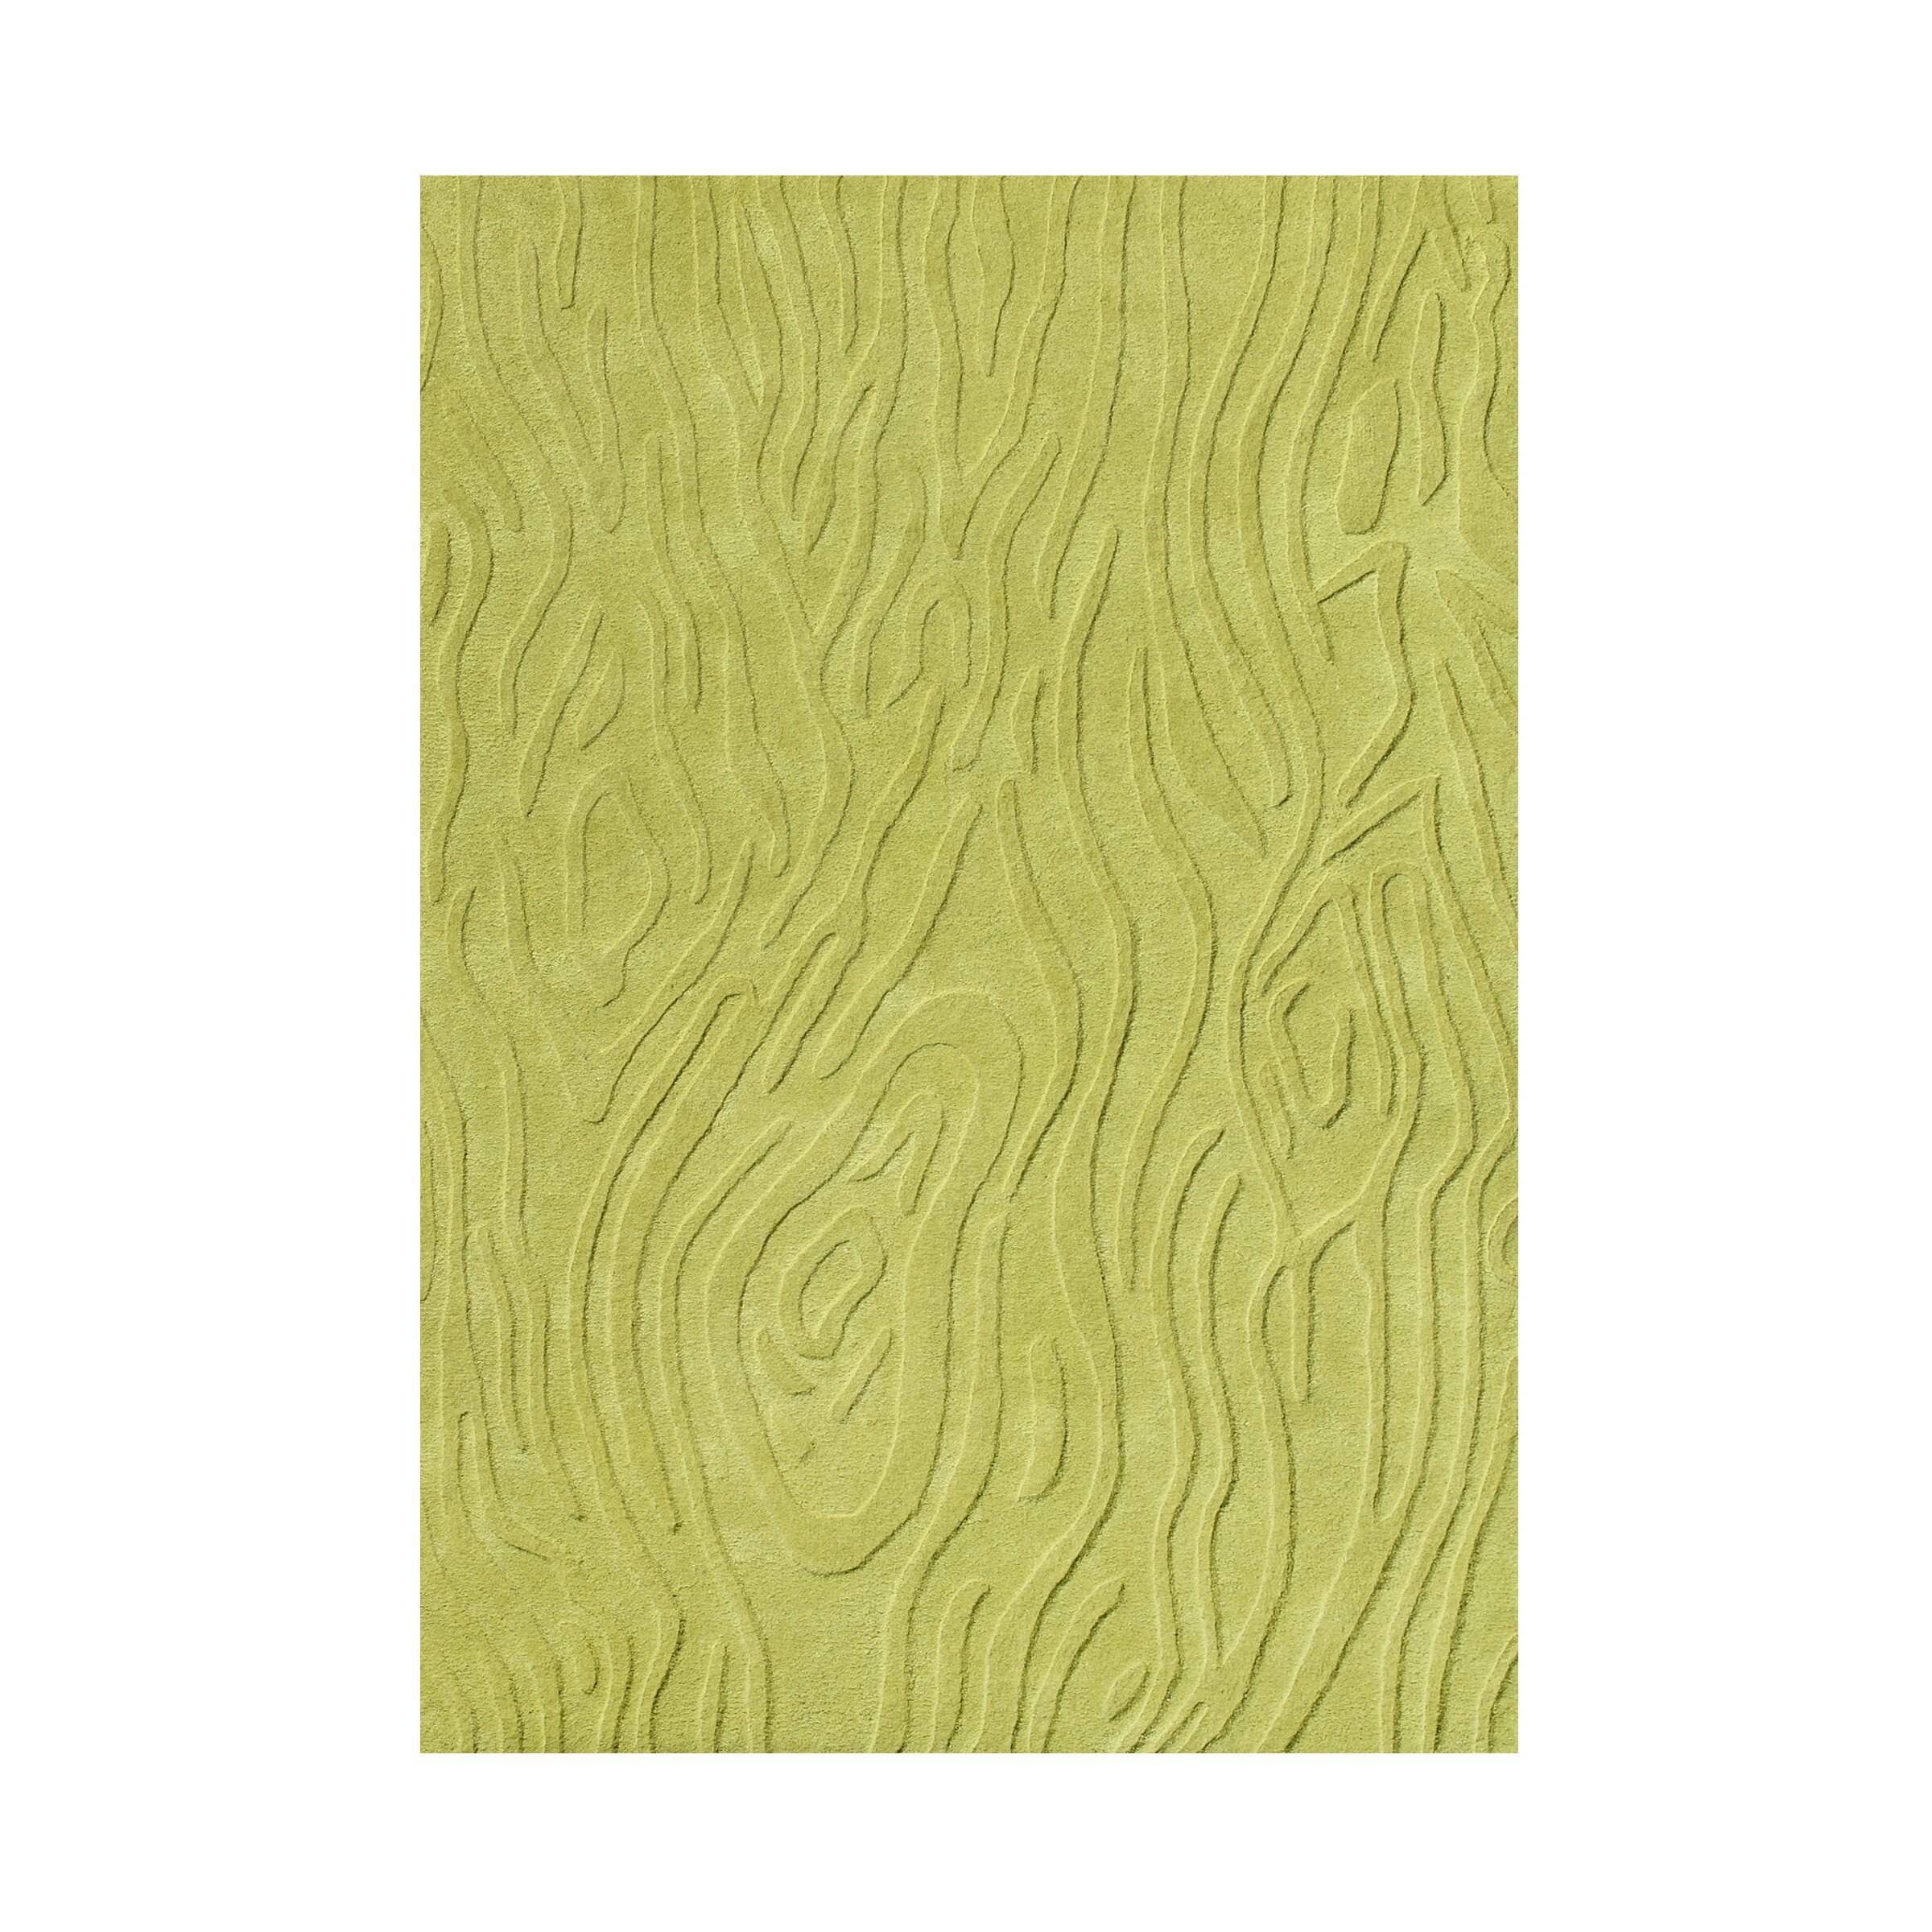 Lime Green Area Rugs The Conestoga Trading Co Tufted Lime Green Area Rug